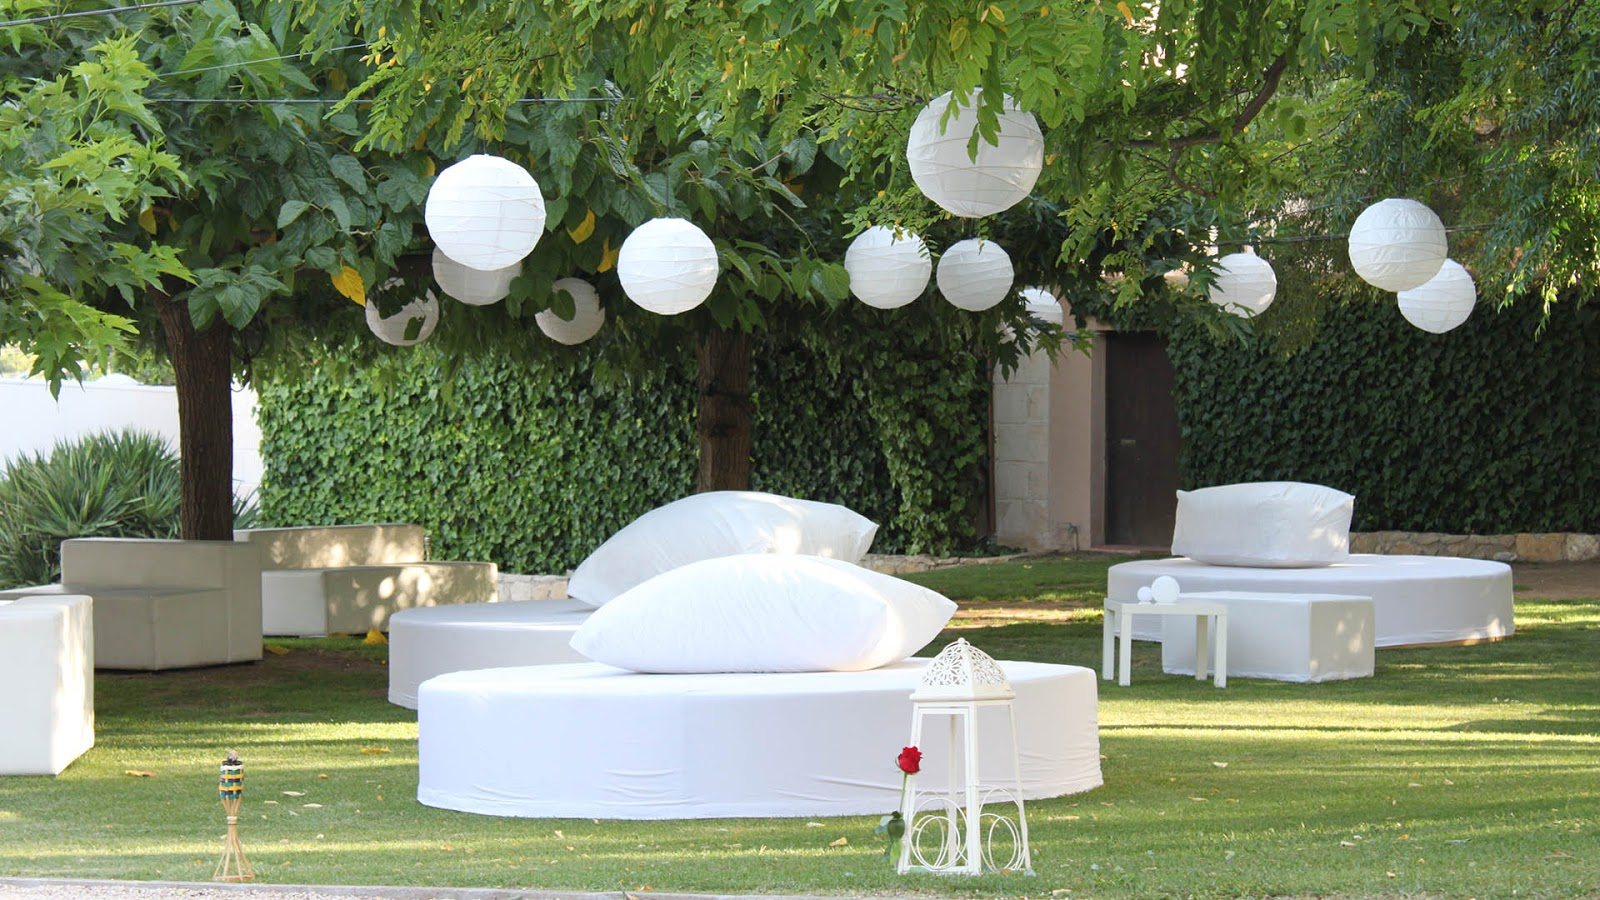 Eres eventos zona chill out para el jard n - Chill out jardin ...